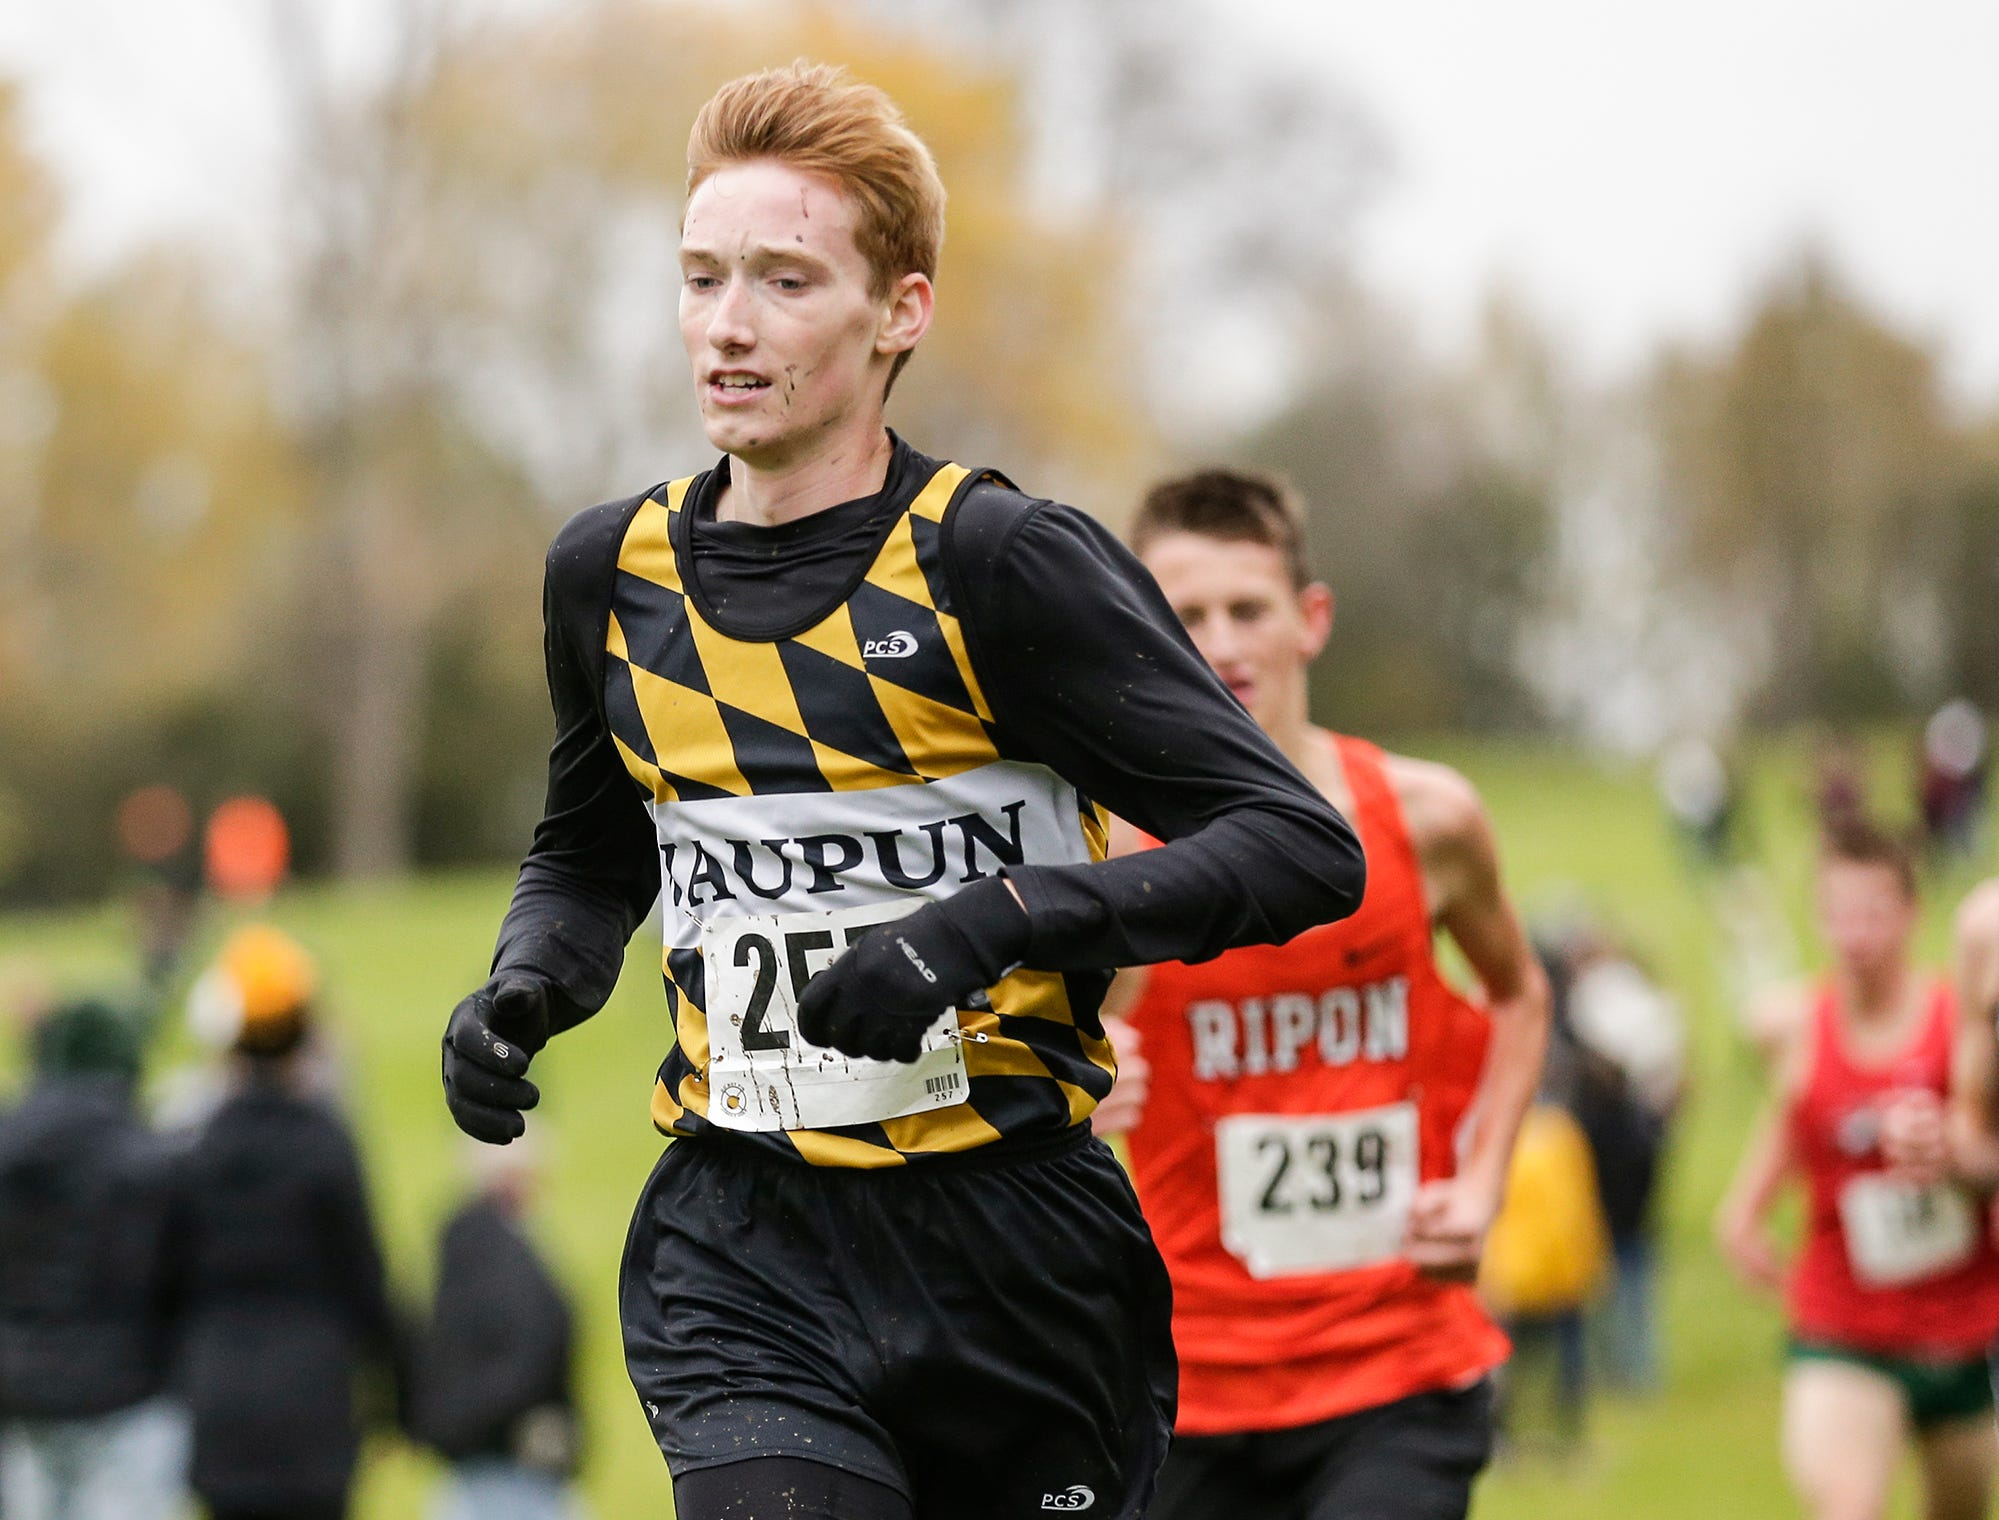 Waupun High School's Adam Vanderkin runs in the WIAA Division two Mayville sectional cross country meet at the Mayville golf course Friday, October 19, 2018. Doug Raflik/USA TODAY NETWORK-Wisconsin